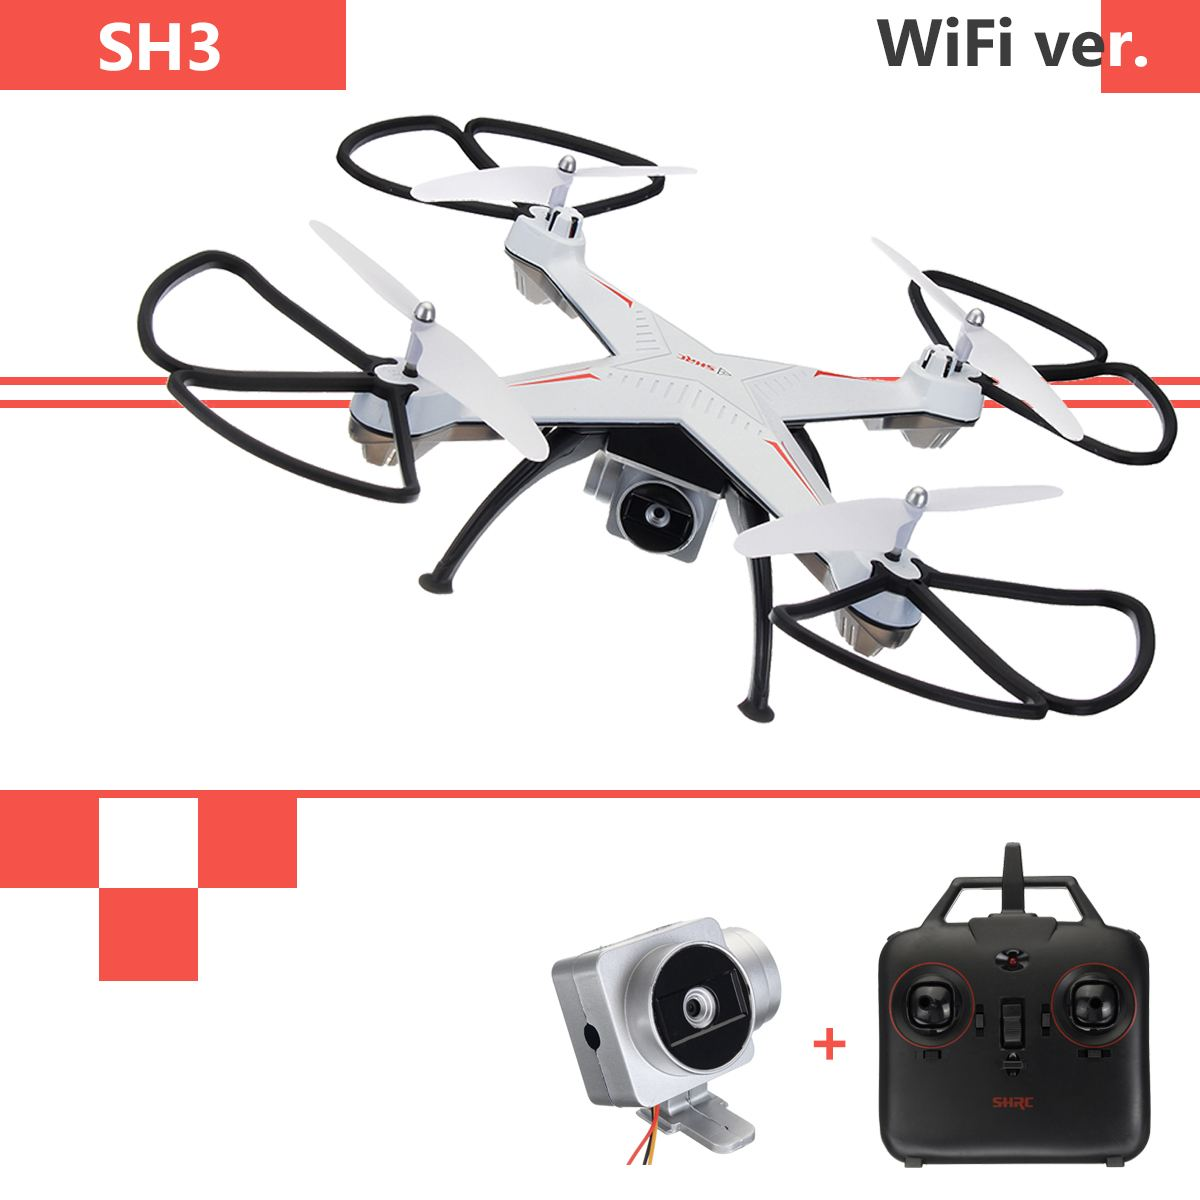 SH3 Helicopter 2.4GHz 4CH 6 Axis Drone 2.0MP HD Camera Quadcopter Aircraft for Kids Gift White Black GoldSH3 Helicopter 2.4GHz 4CH 6 Axis Drone 2.0MP HD Camera Quadcopter Aircraft for Kids Gift White Black Gold